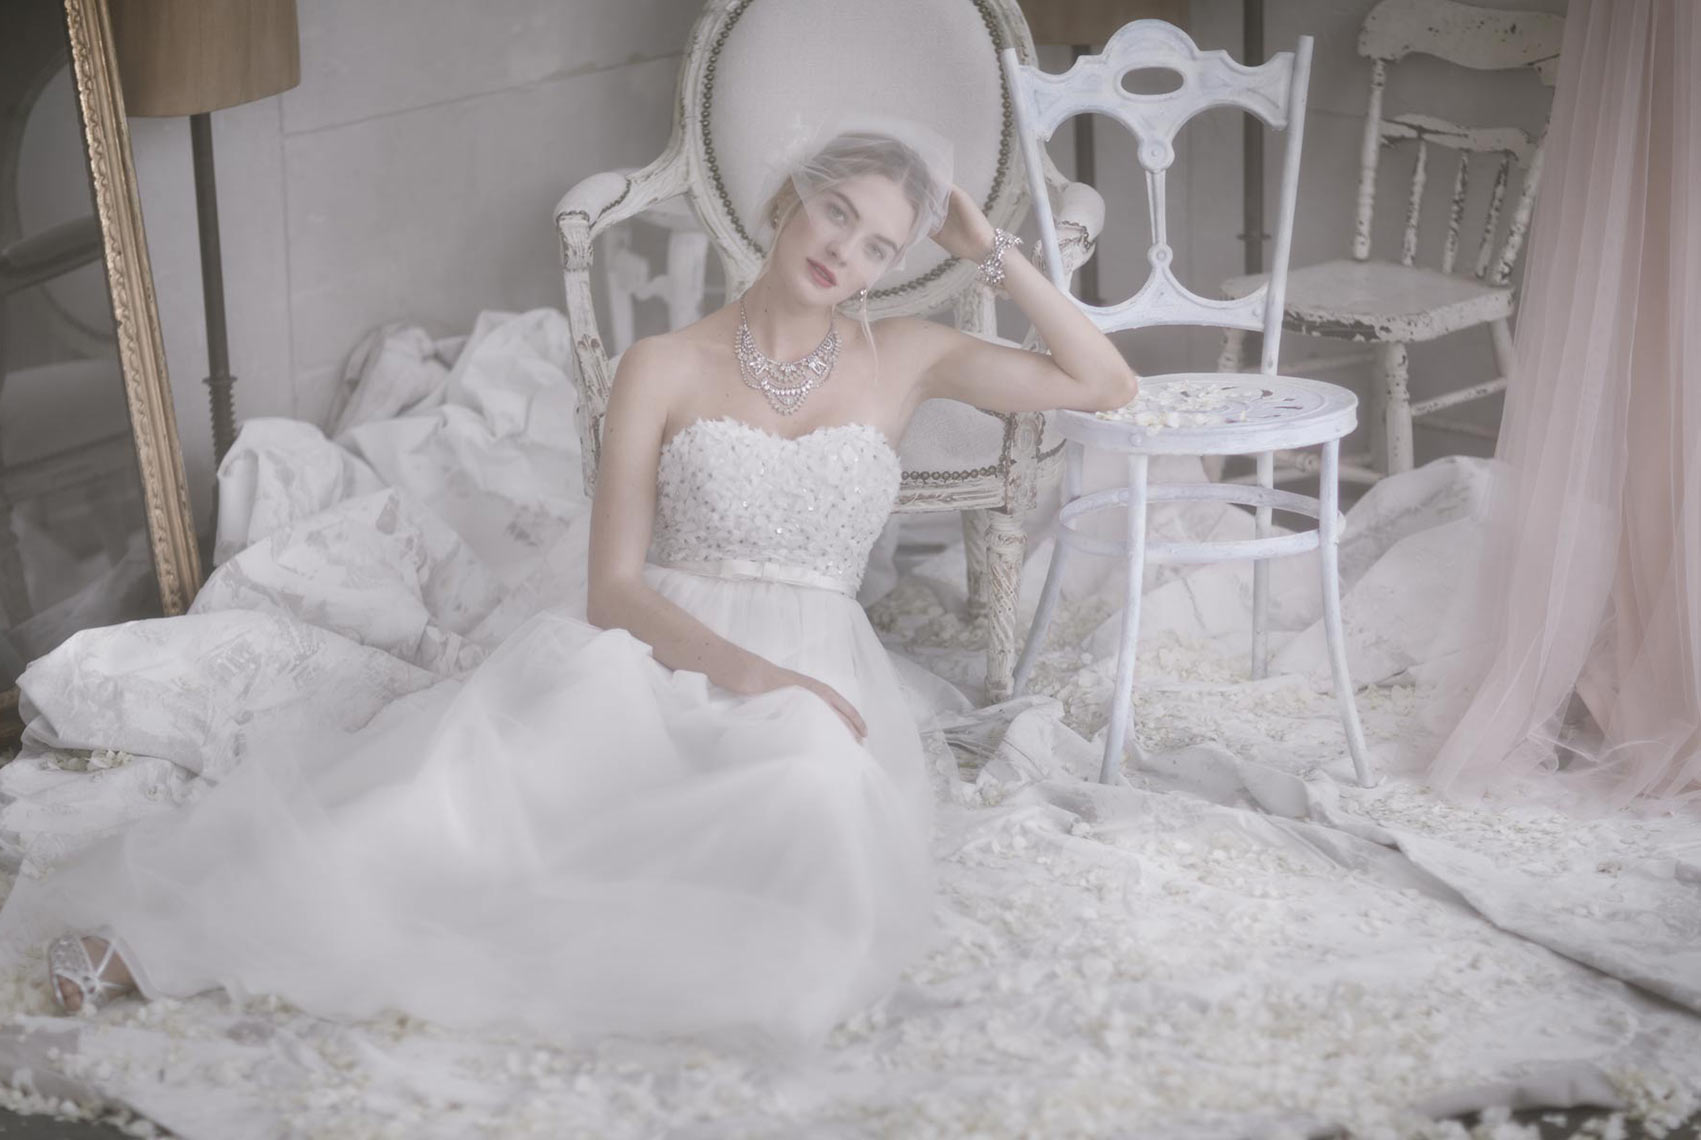 Wedding and bridal fashion photo for BHLDN.